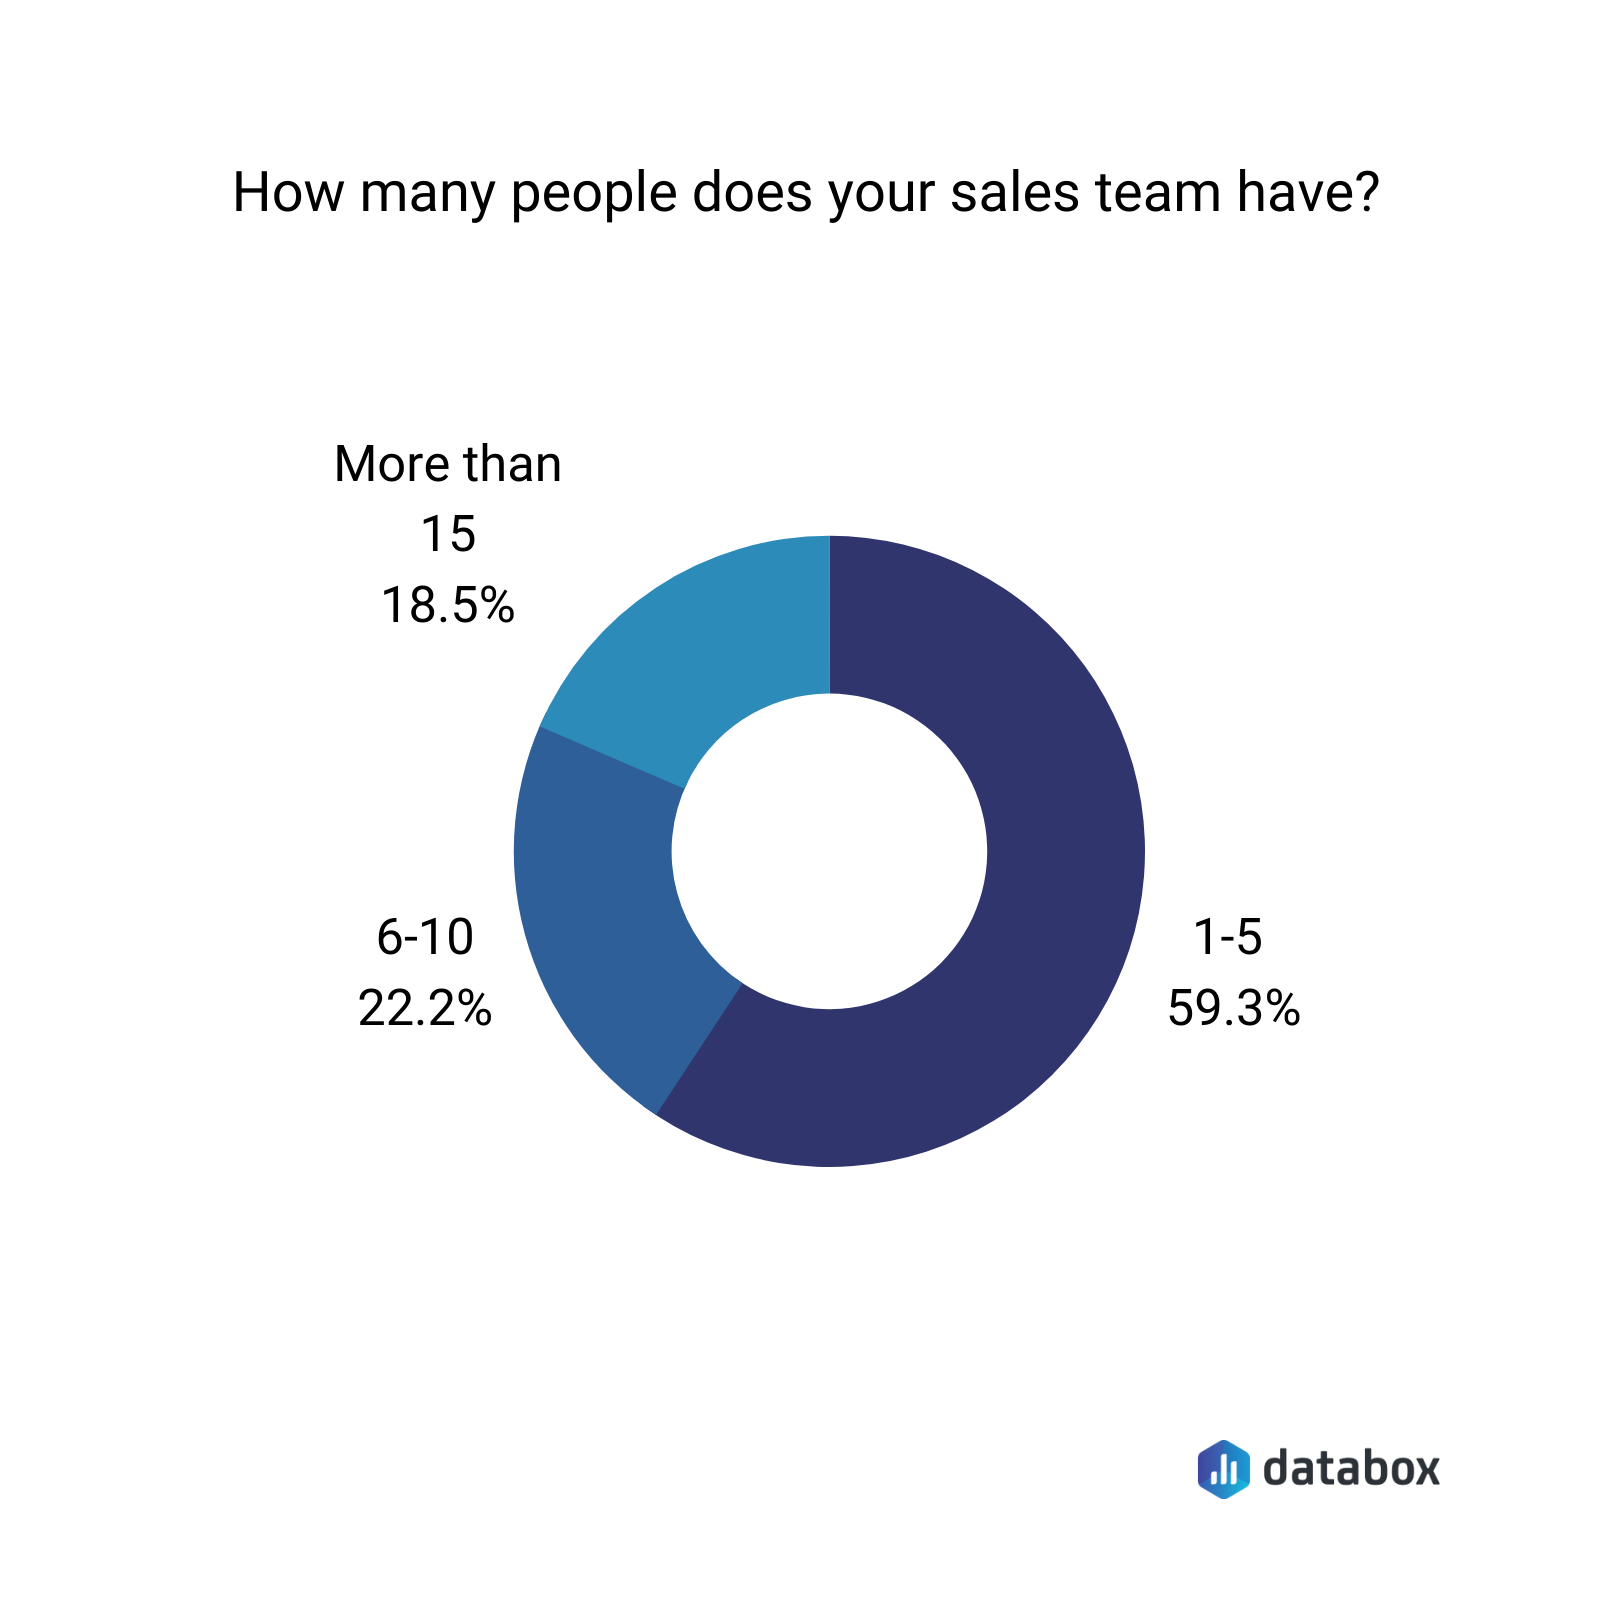 how many people does your sales team have?